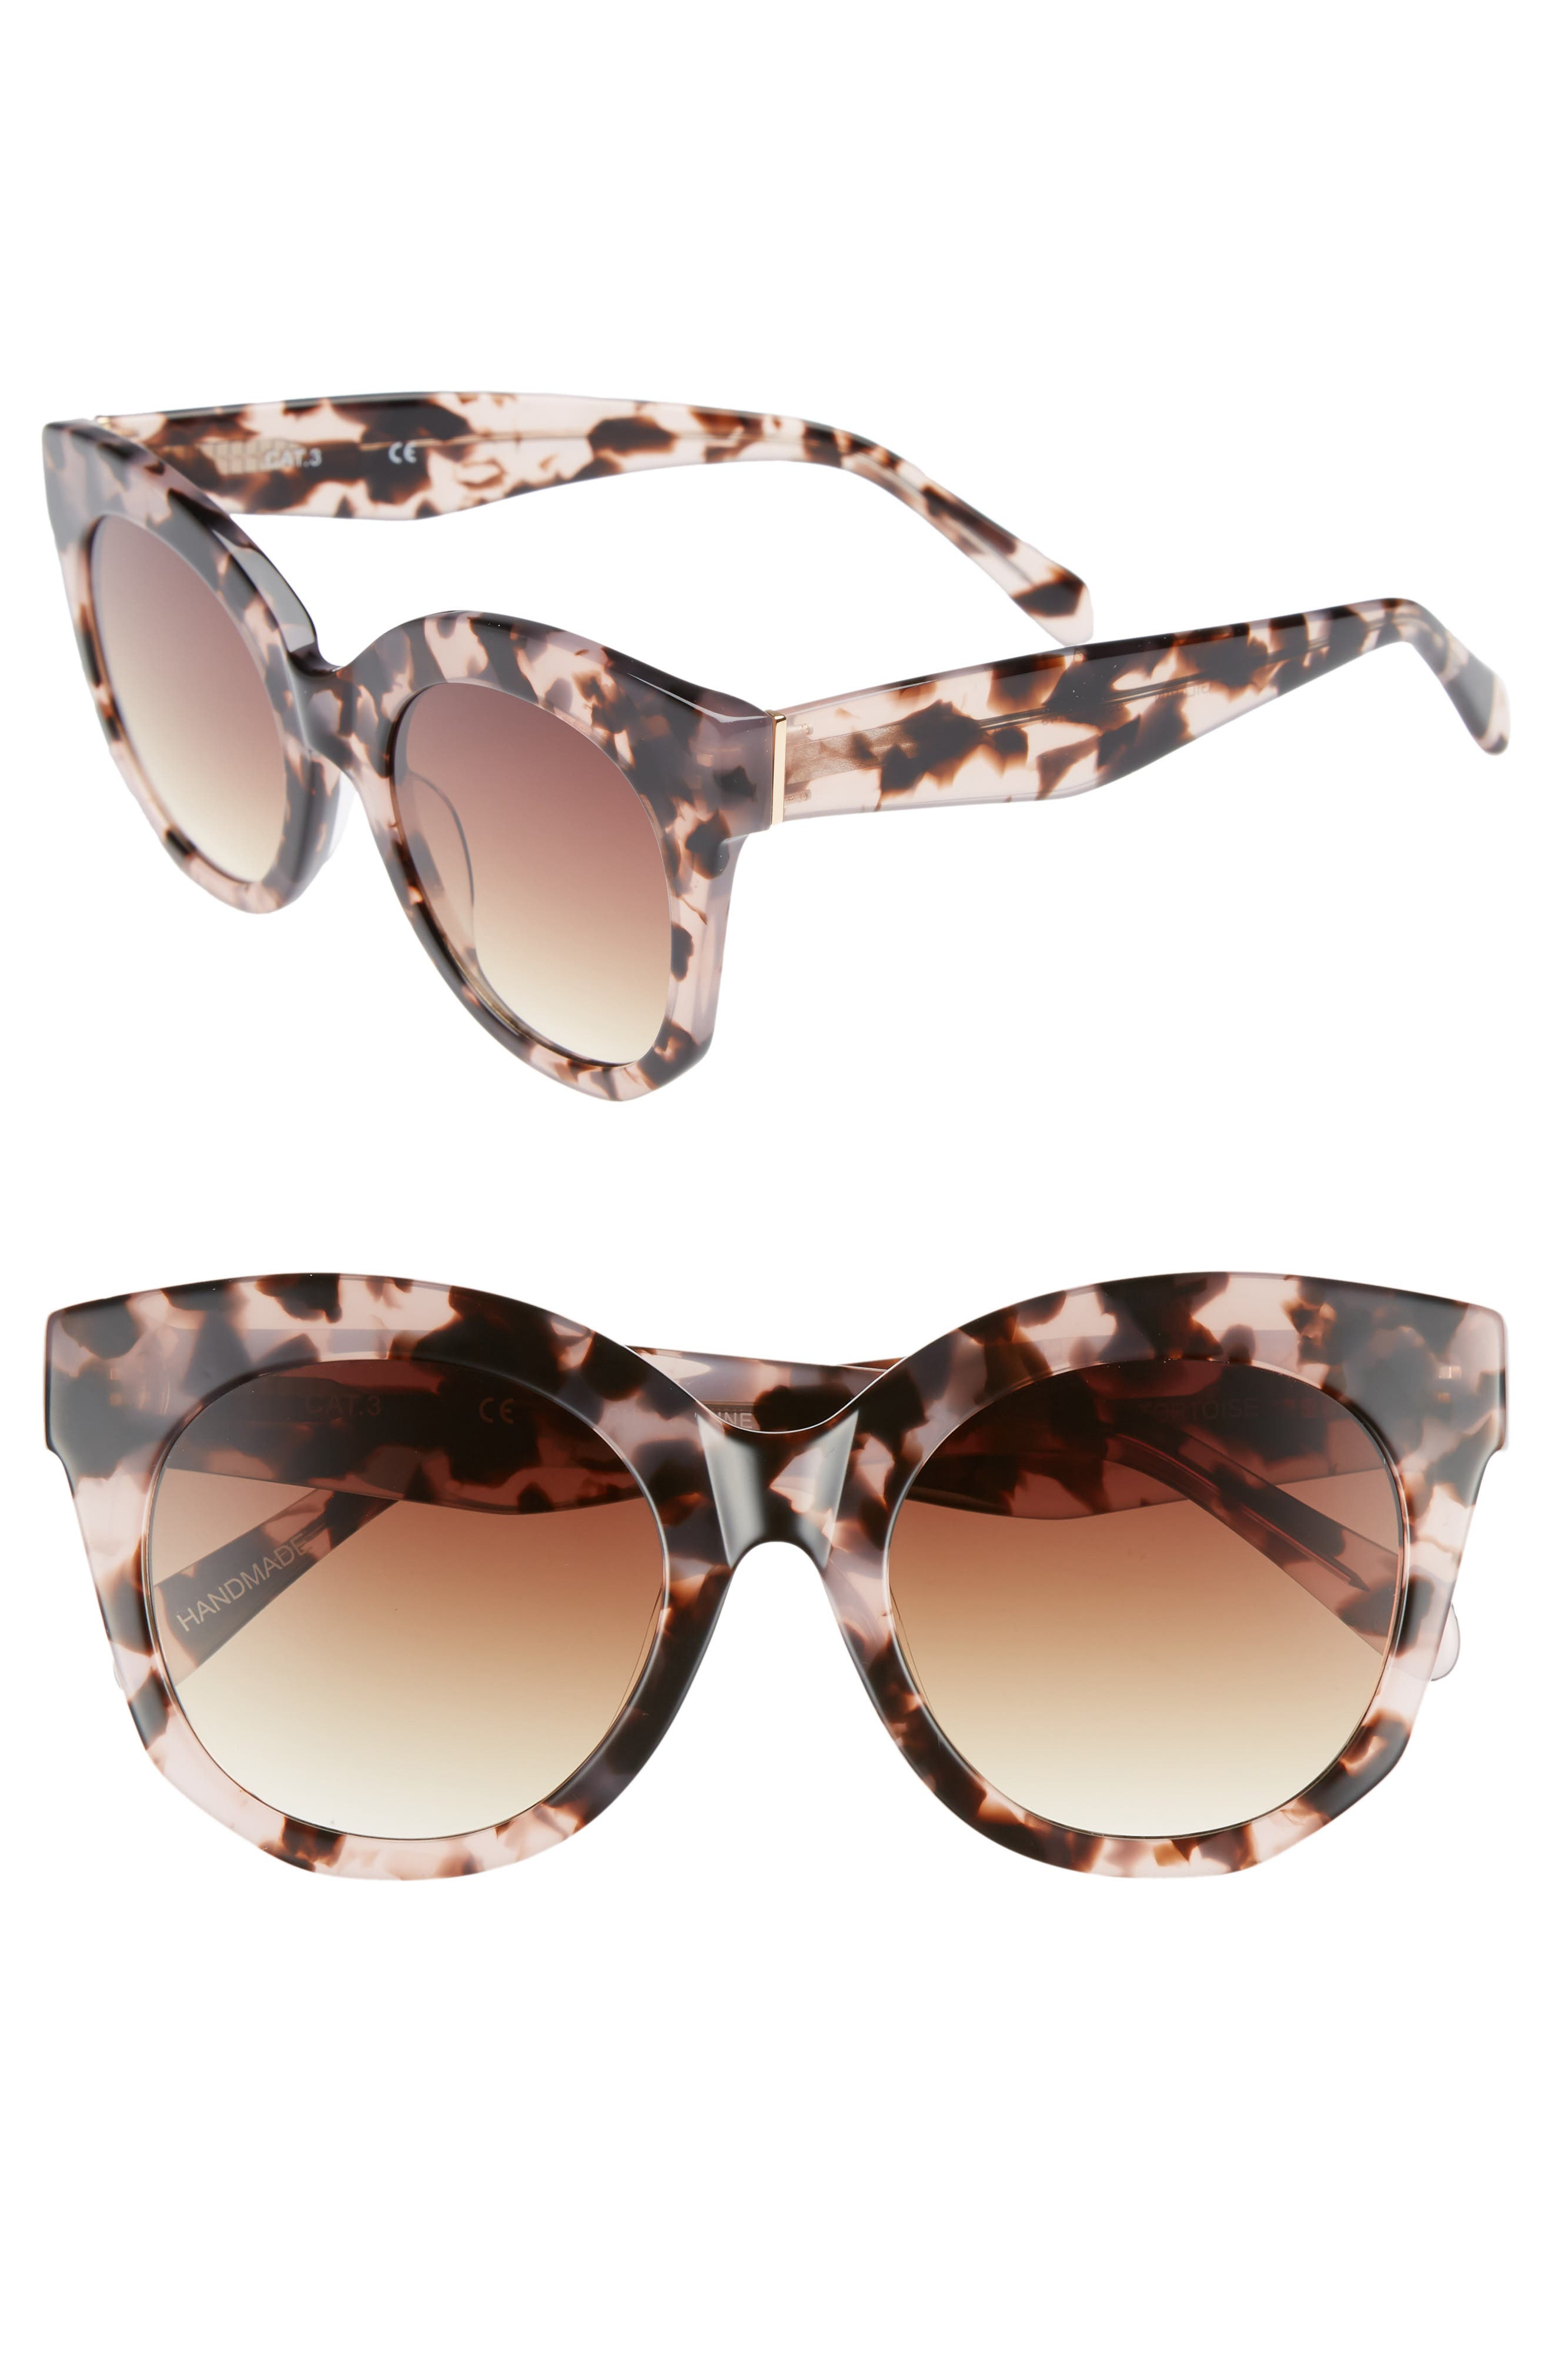 Gillian 52mm Sunglasses,                         Main,                         color, Pink Tortoise